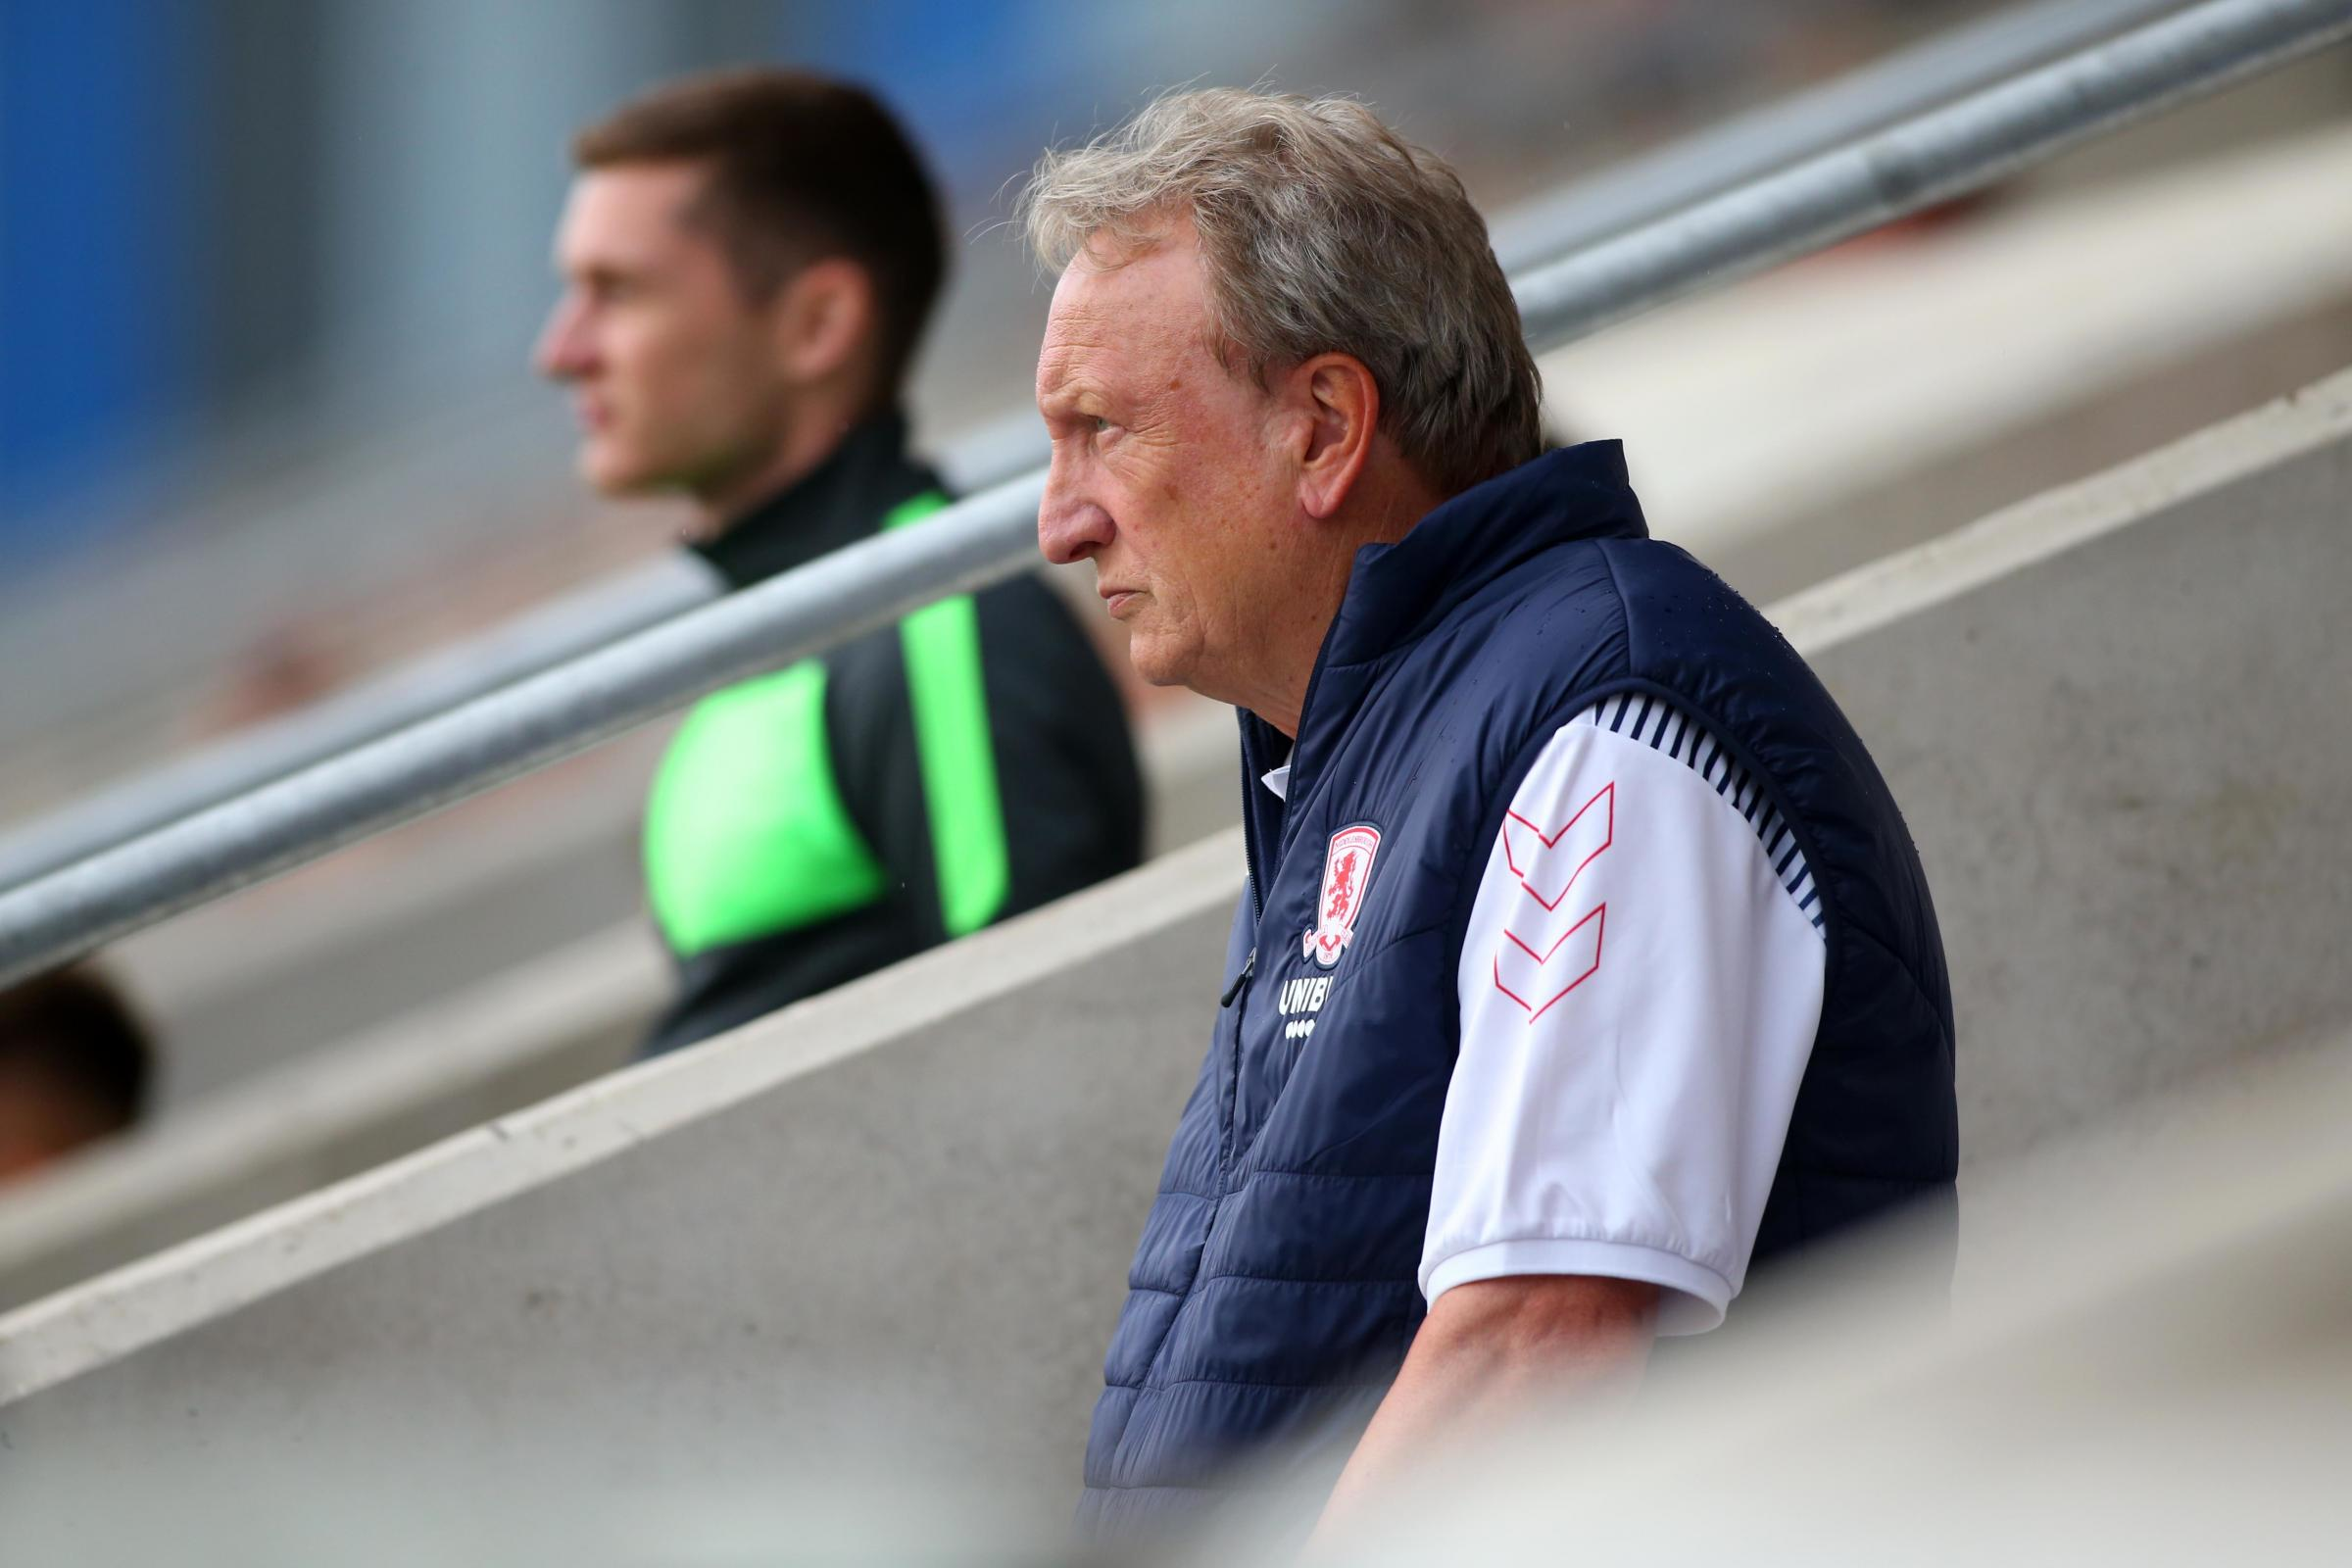 Neil Warnock confirms Neil Bausor is in South America - and explains the current situation with Martin Payero